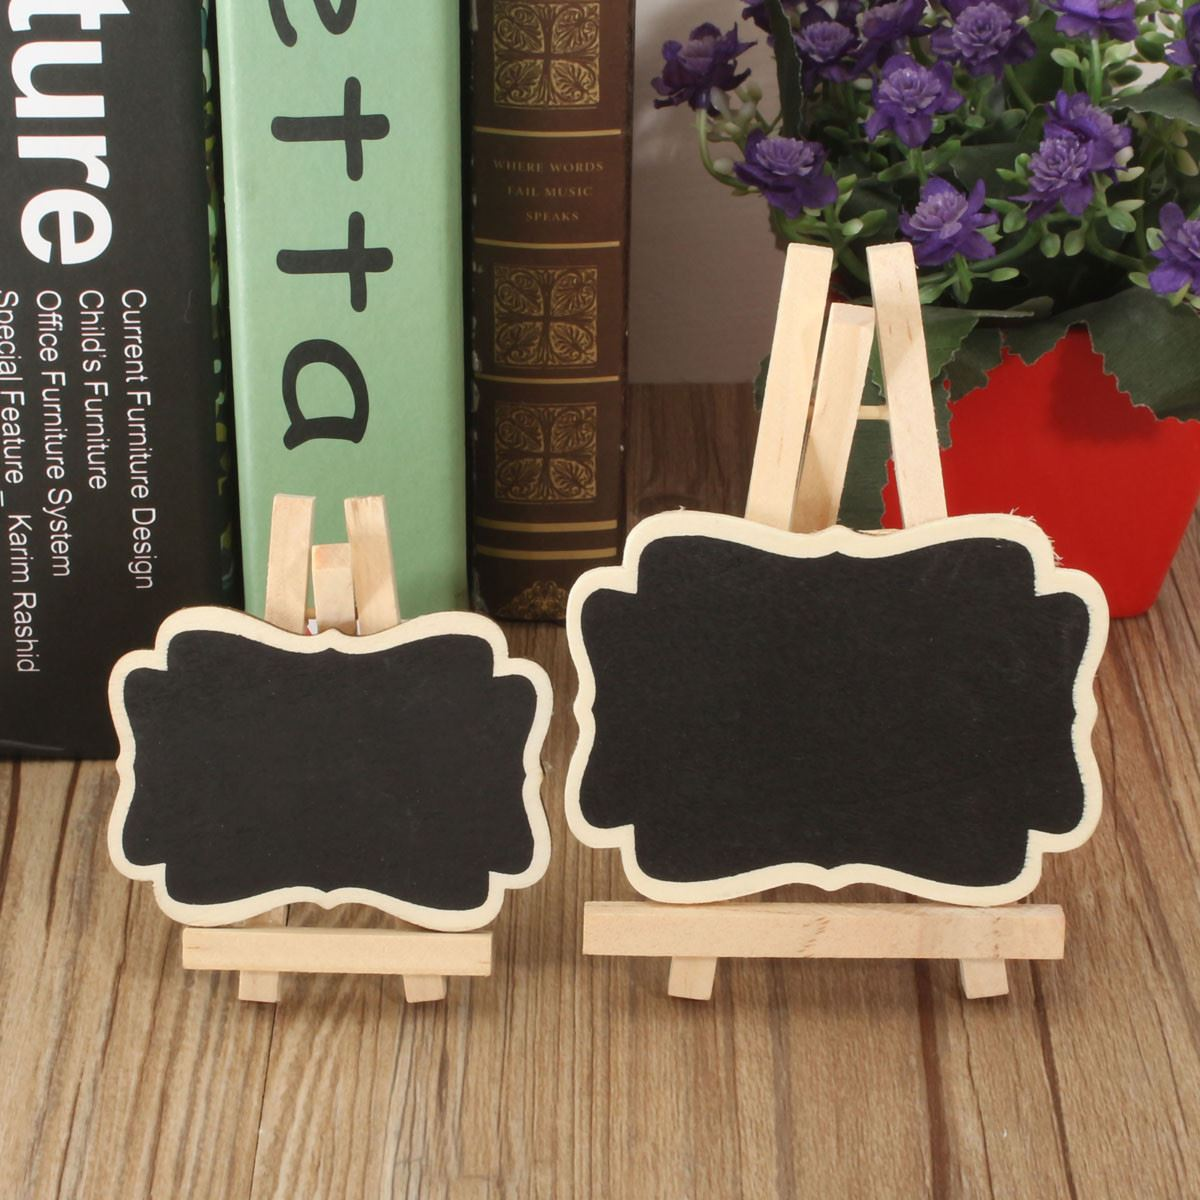 10Pcs Mini Wooden Blackboard Chalkboard Labels Message